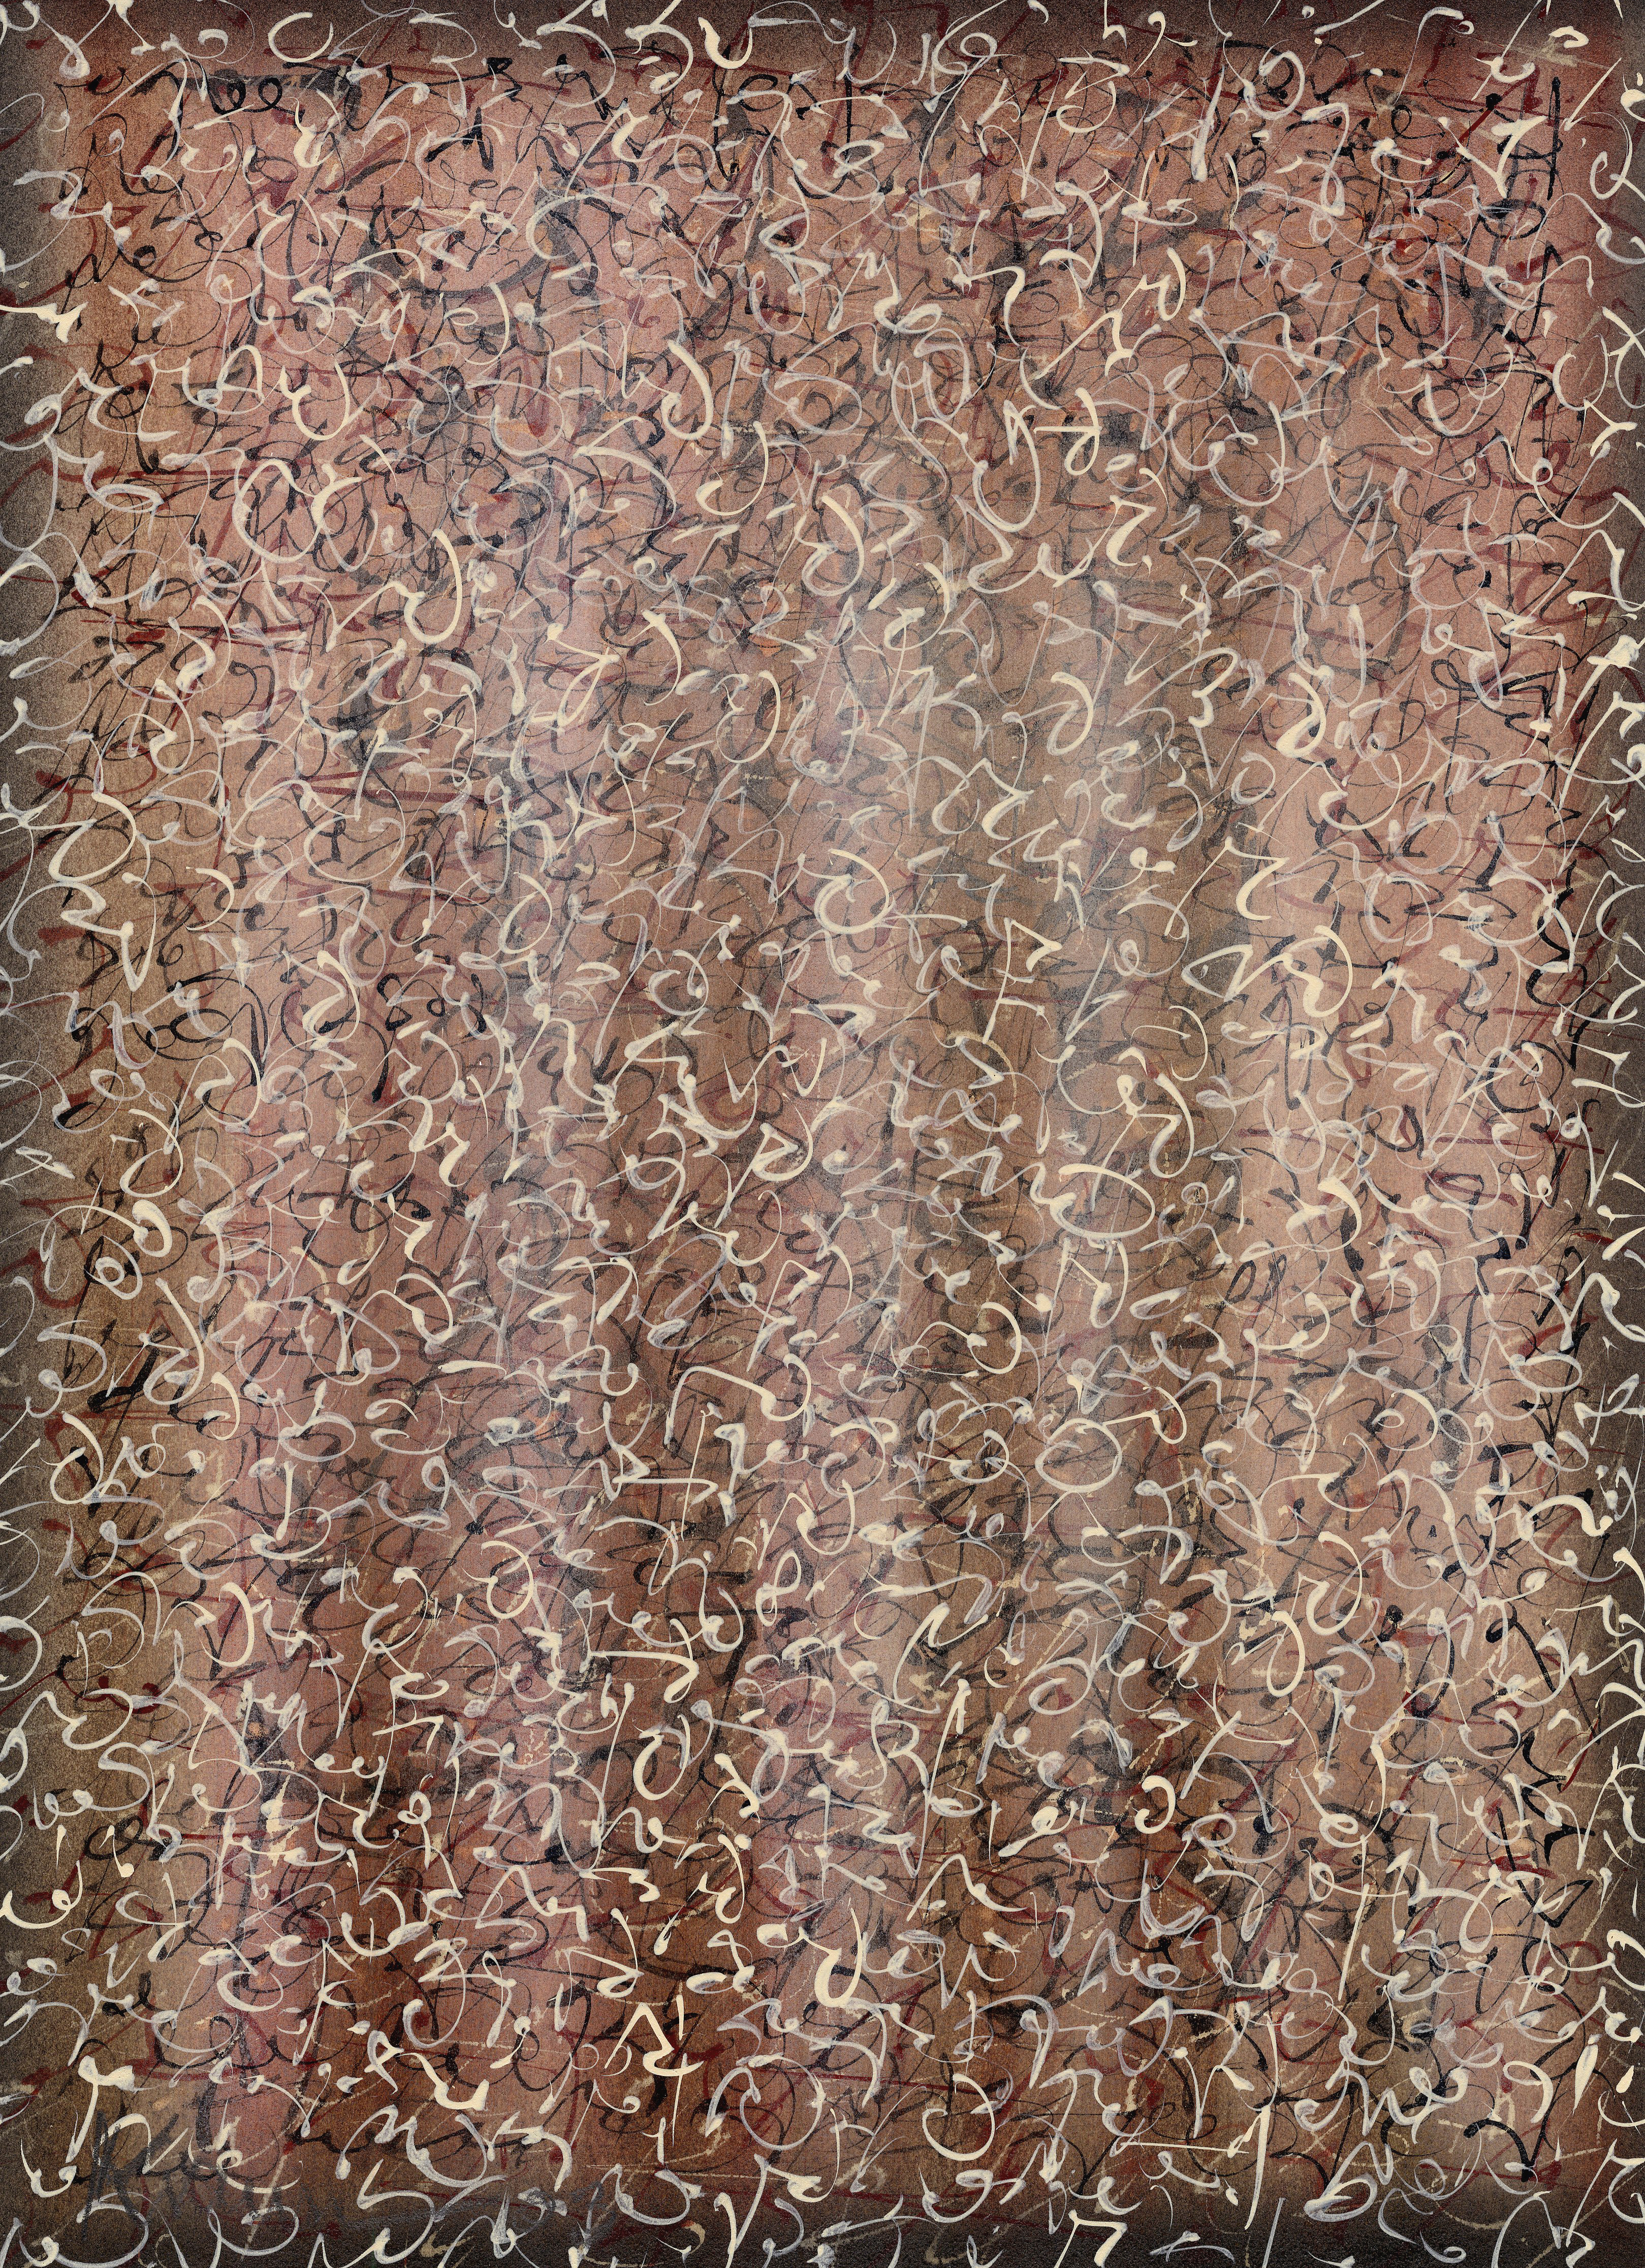 Homage to Mark Tobey